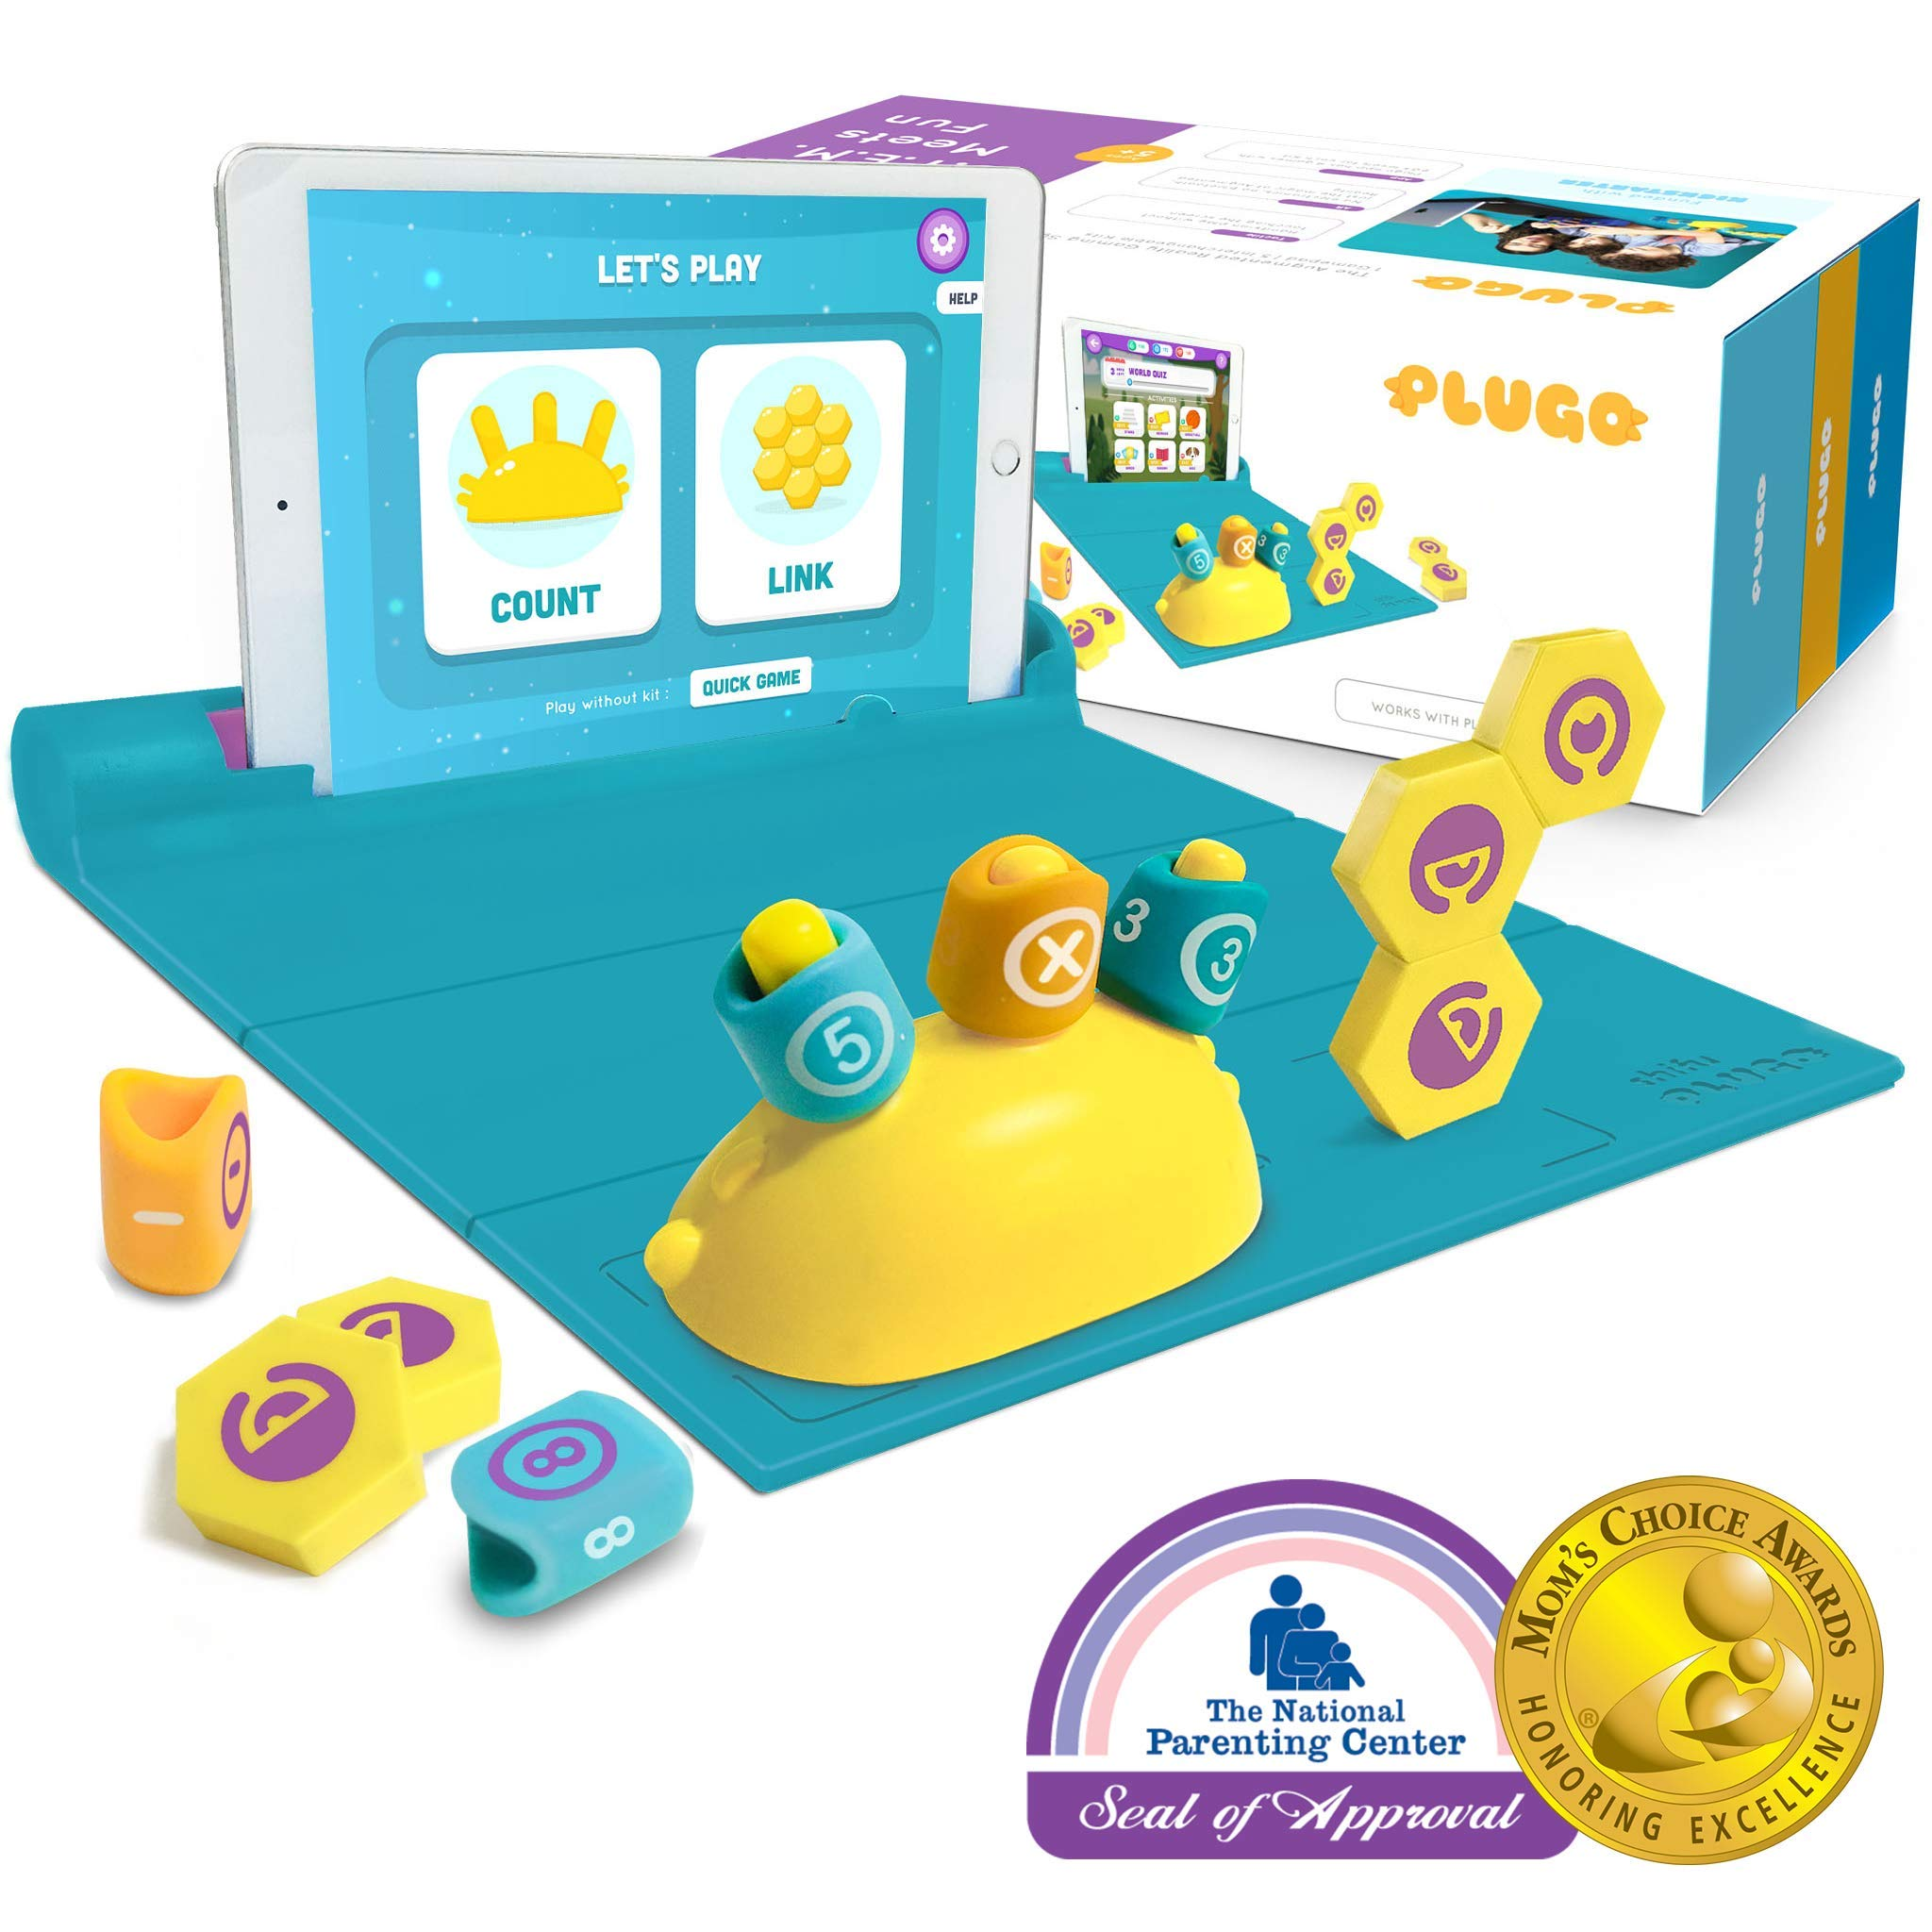 Shifu Plugo - Count & Link Combo Kit - Cool Math Games & Magnetic Building Blocks Puzzles for Kids, Educational STEM Toy for Boys & Girls Age 4 to 10 Years (iPad / iPhone Required) by Shifu (Image #1)